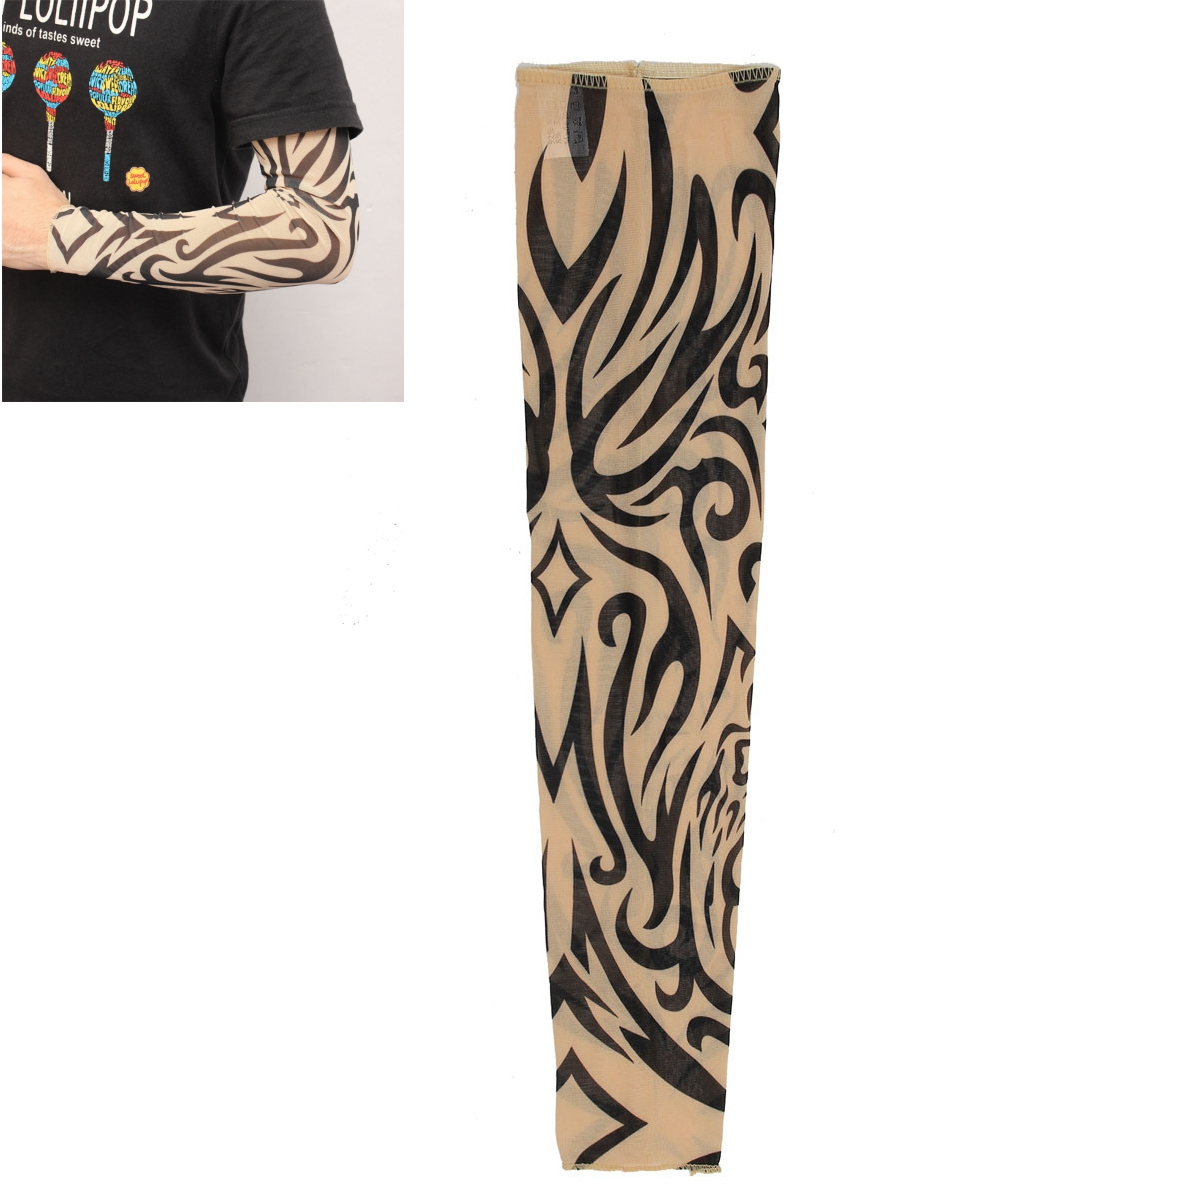 1pc Tattoo Sleeves Arm Stocking Nylon Spandex Stretchy